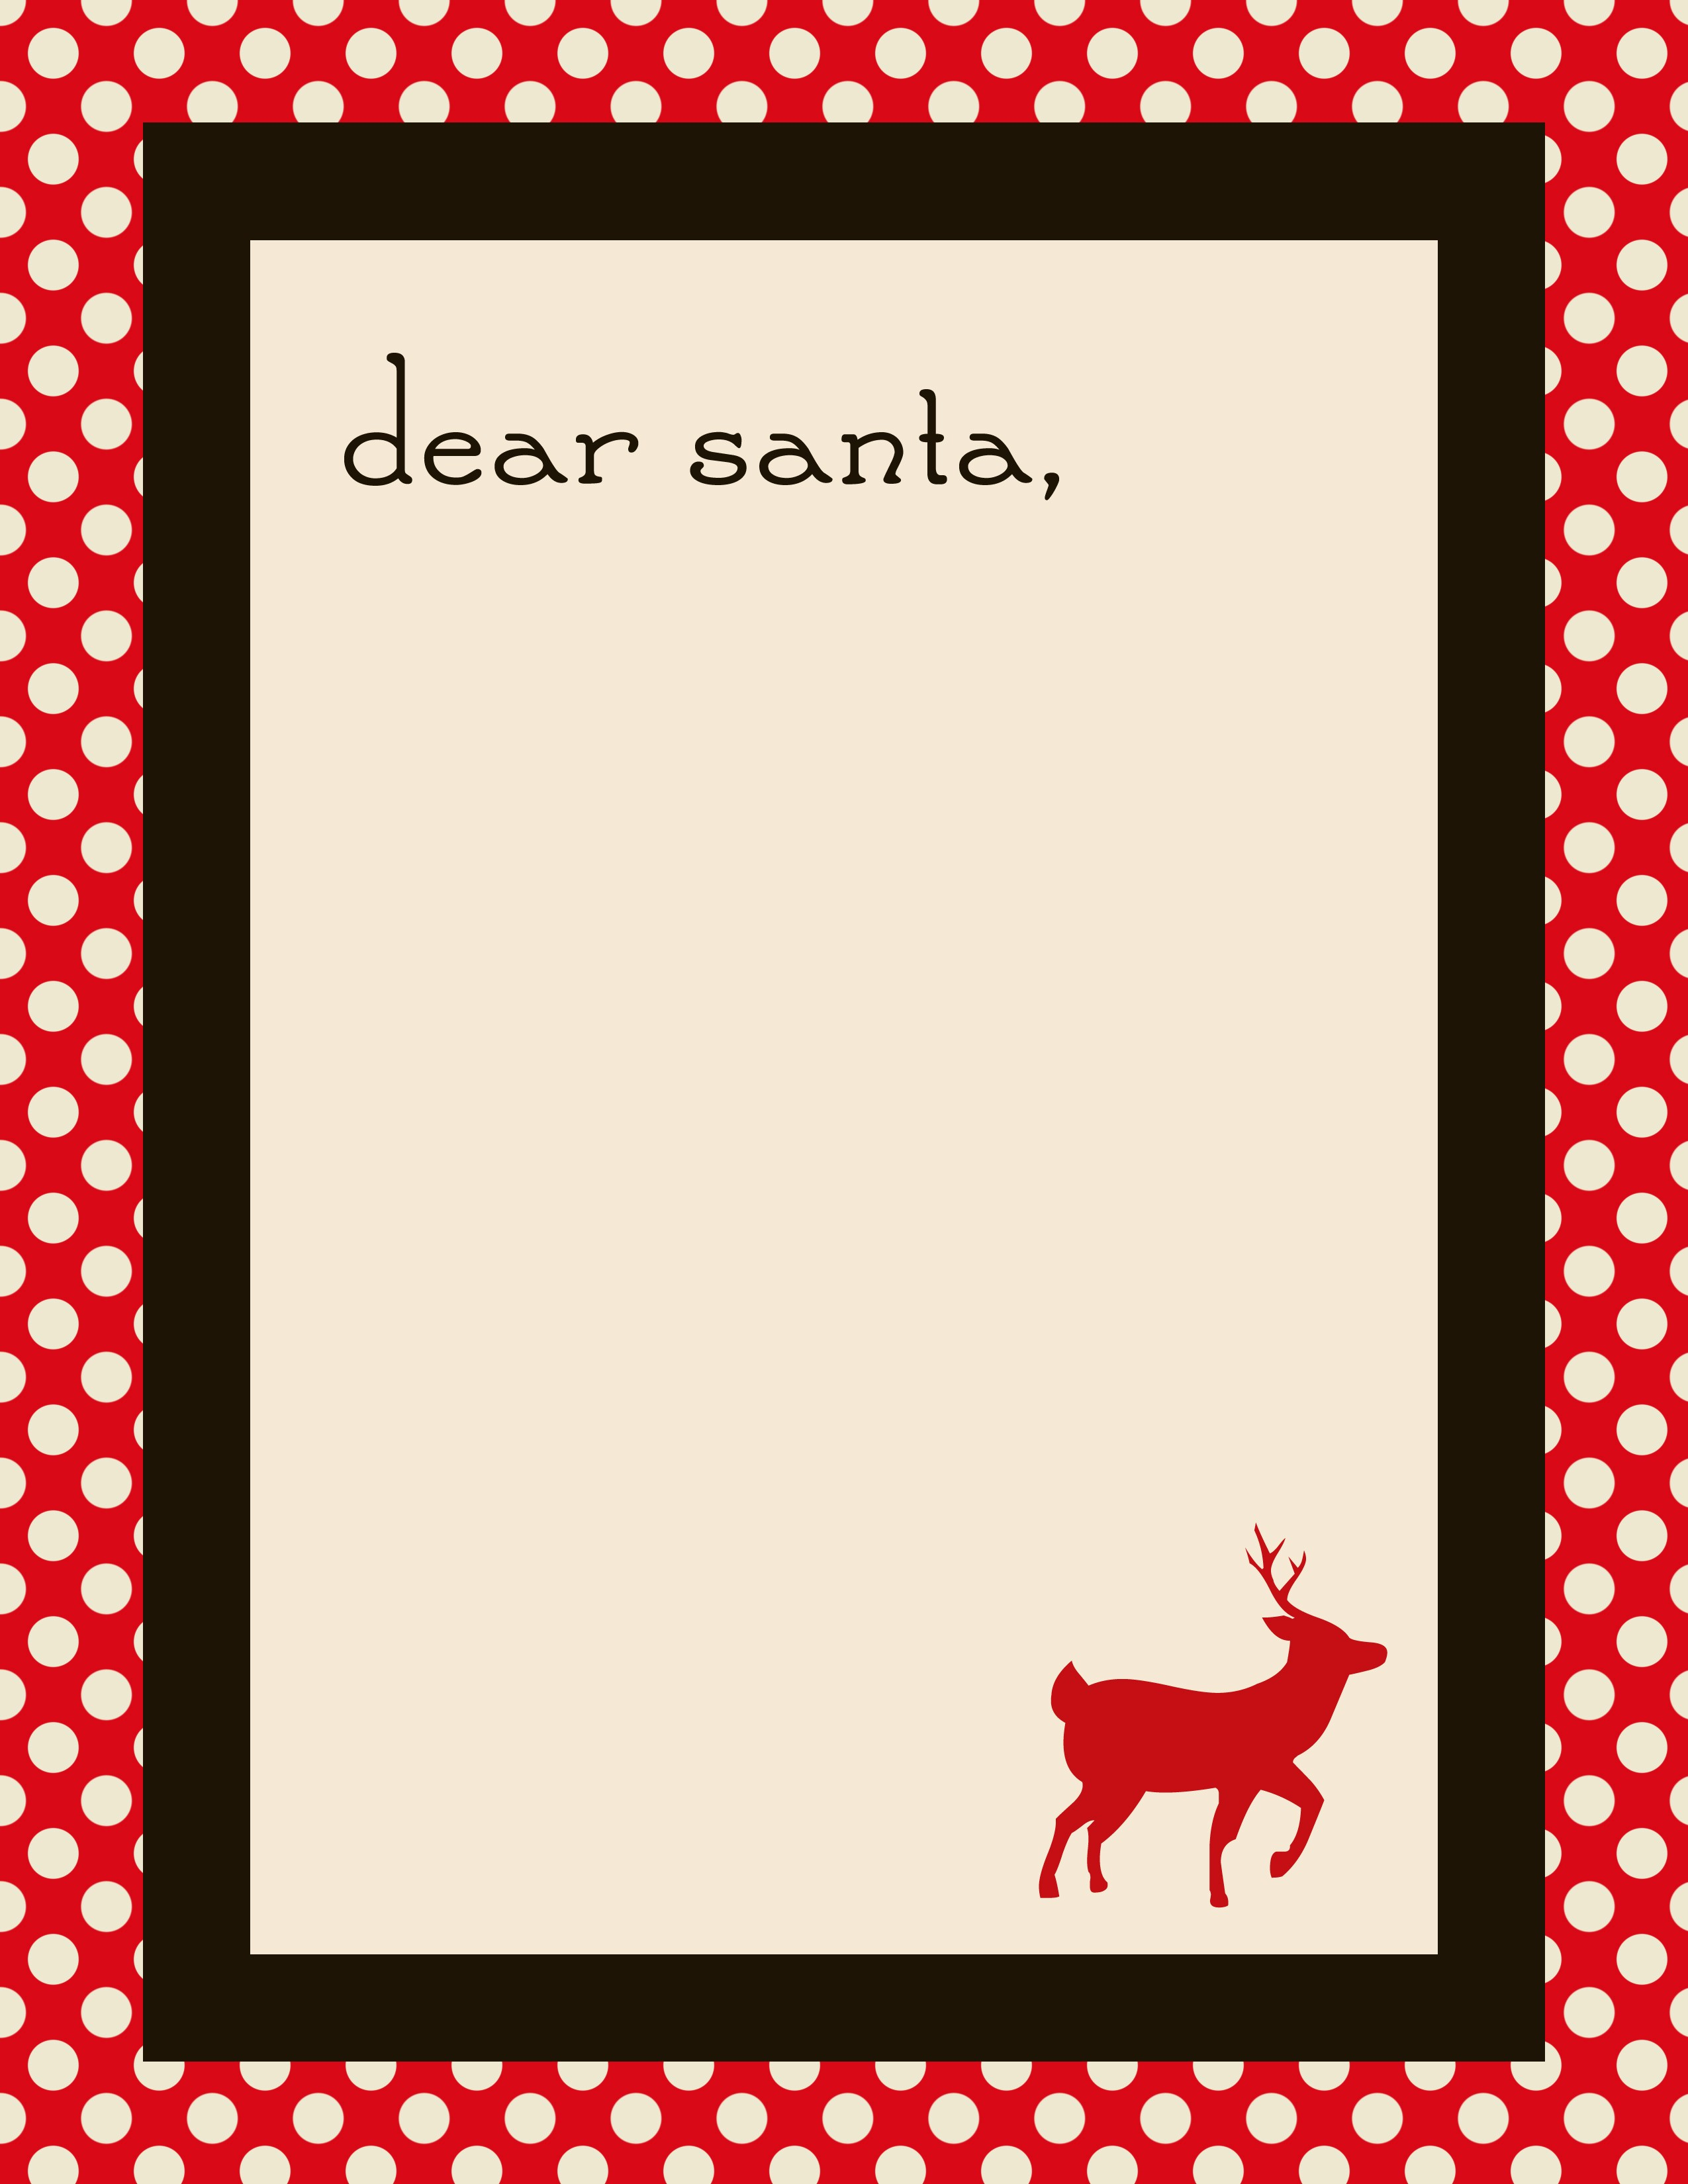 Free Holiday Templates for Word New Christmas Letter Templates Microsoft Word – Fun for